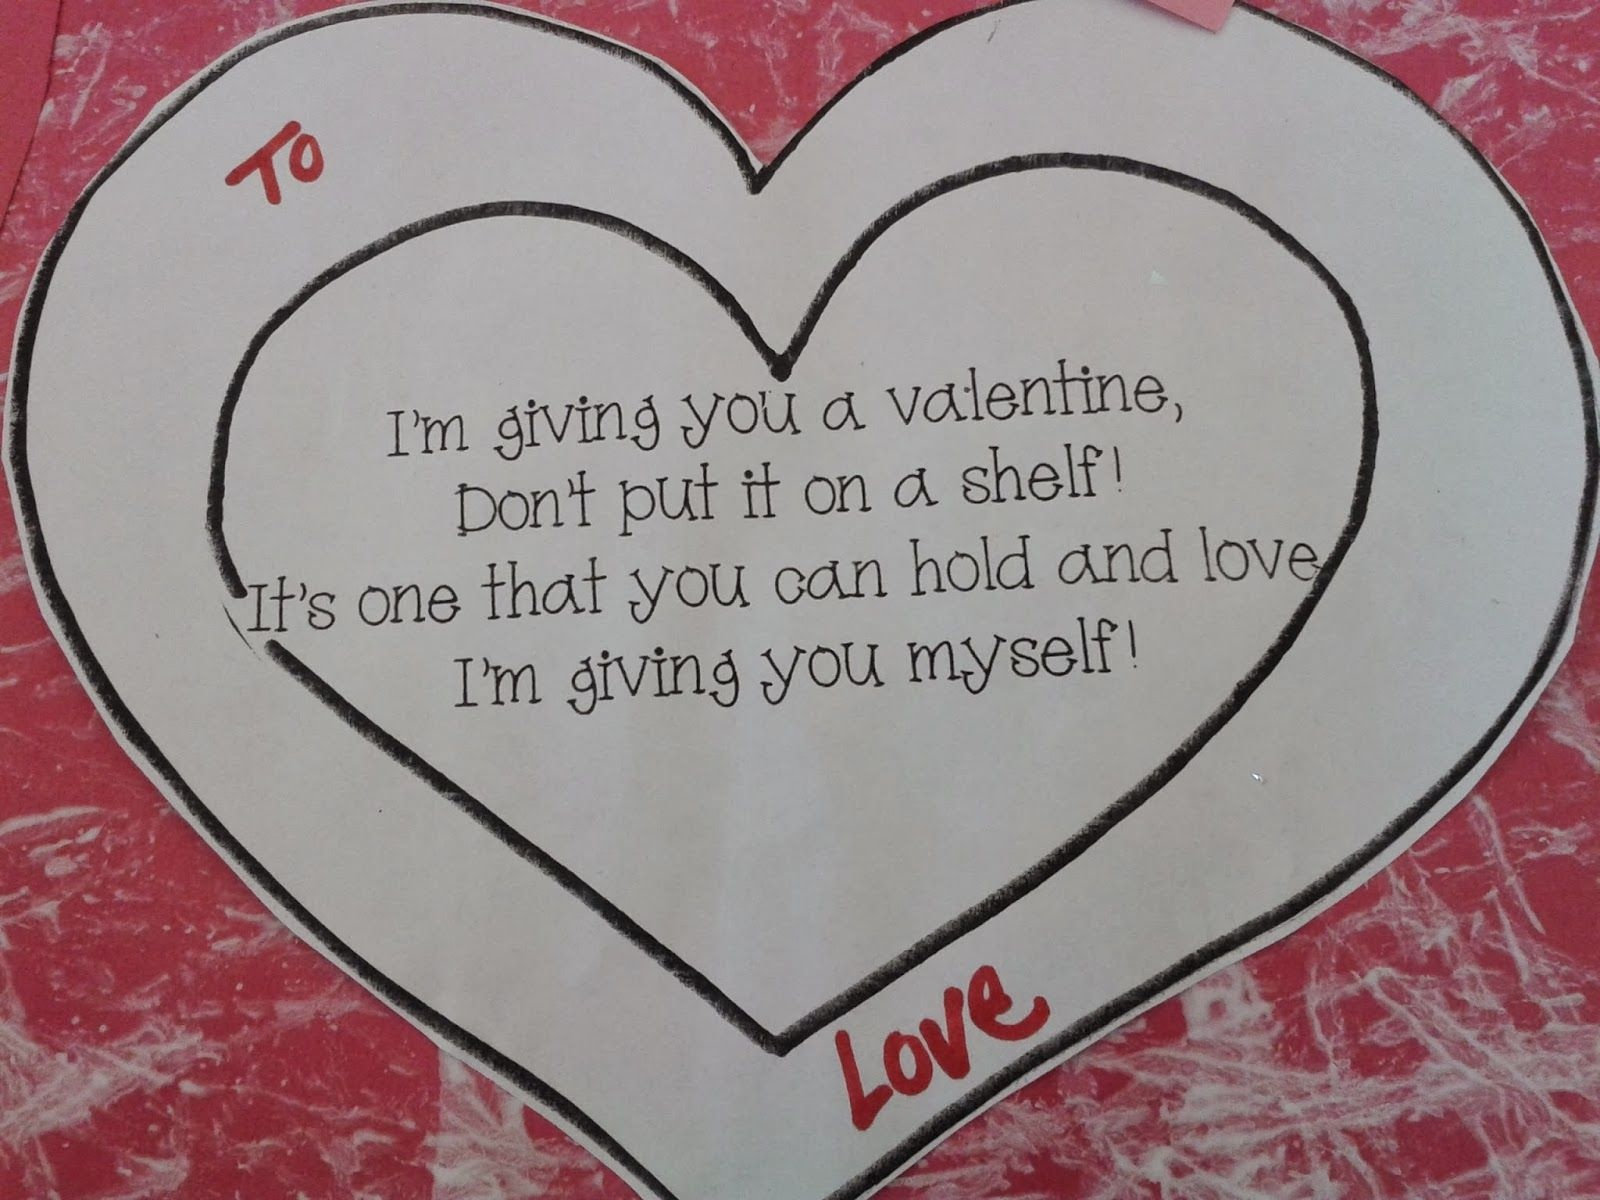 Show The Love! Valentine's Day Cards For Parents   Preschool - Free Printable Valentines Day Cards For Parents